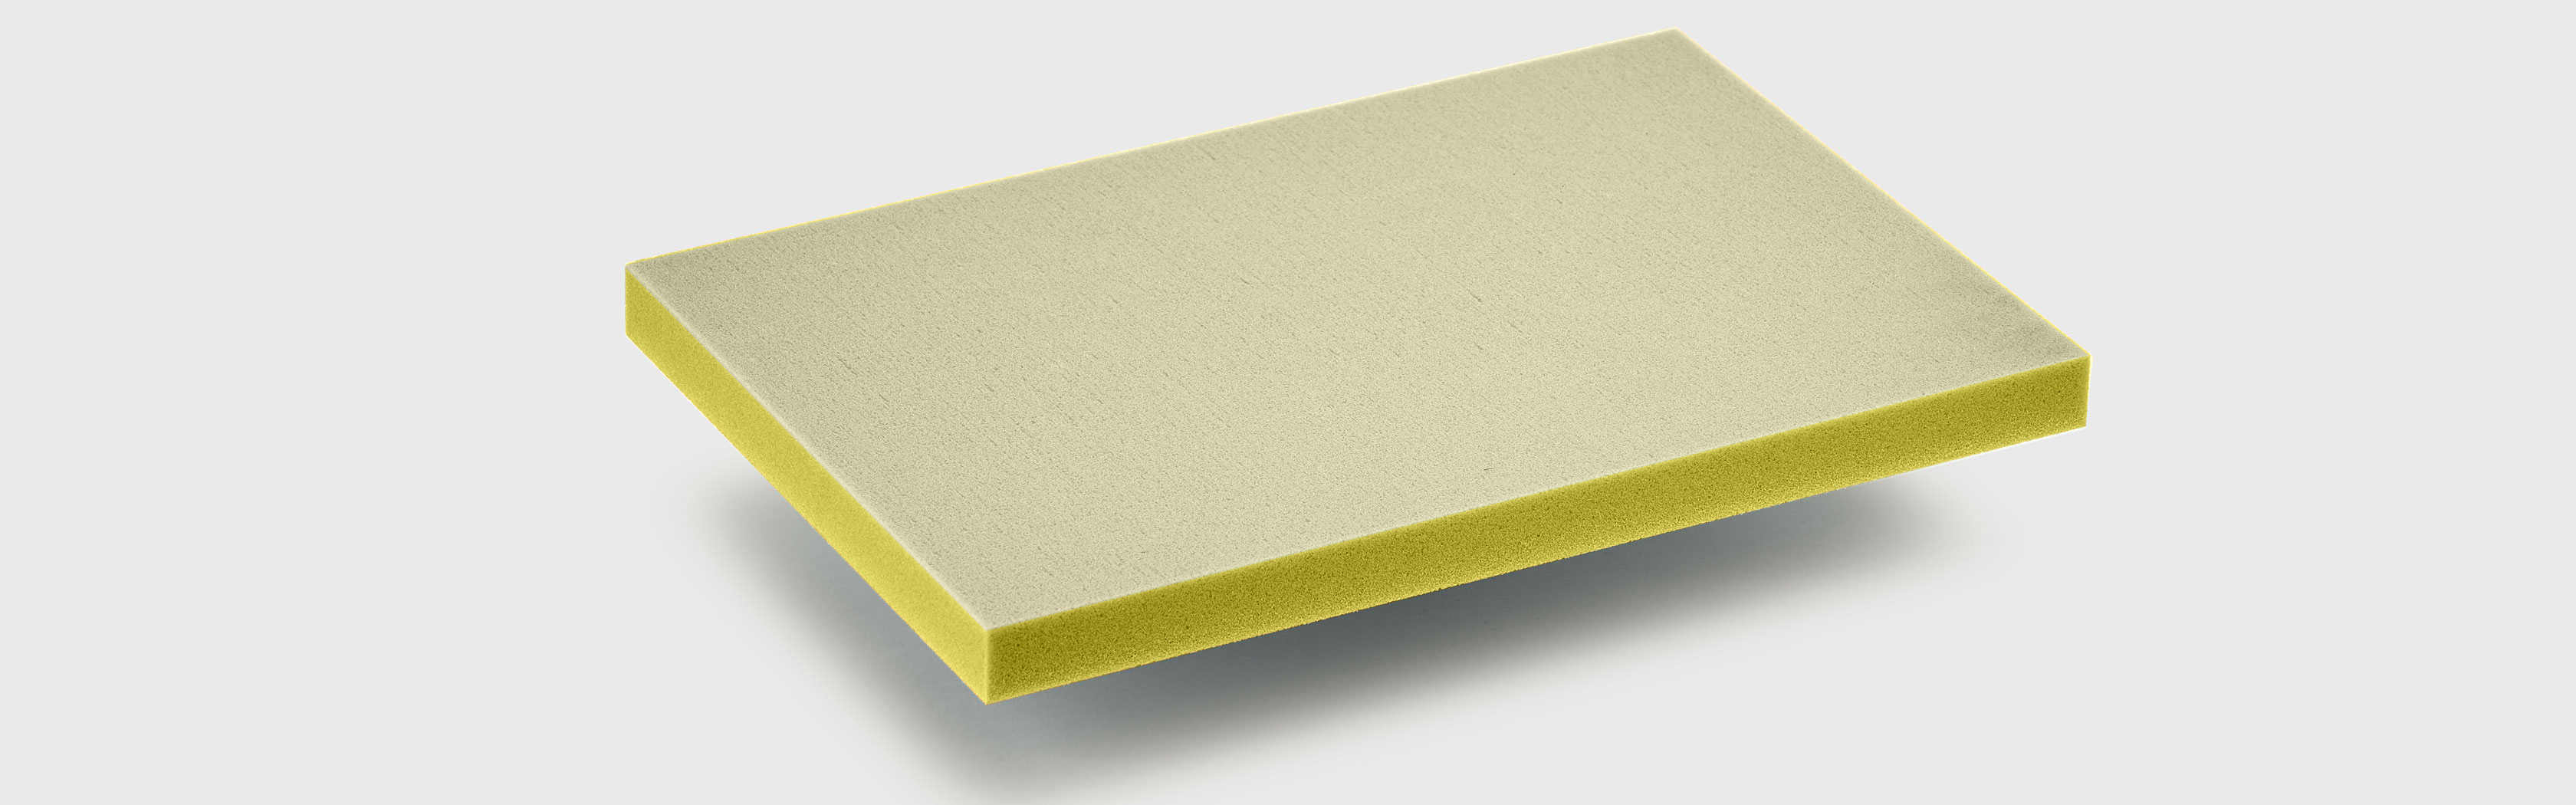 PIR-STEP is a lightweight sandwich panel with a core in polyurethane foam with glass fibre reinforced with epoxy resin.